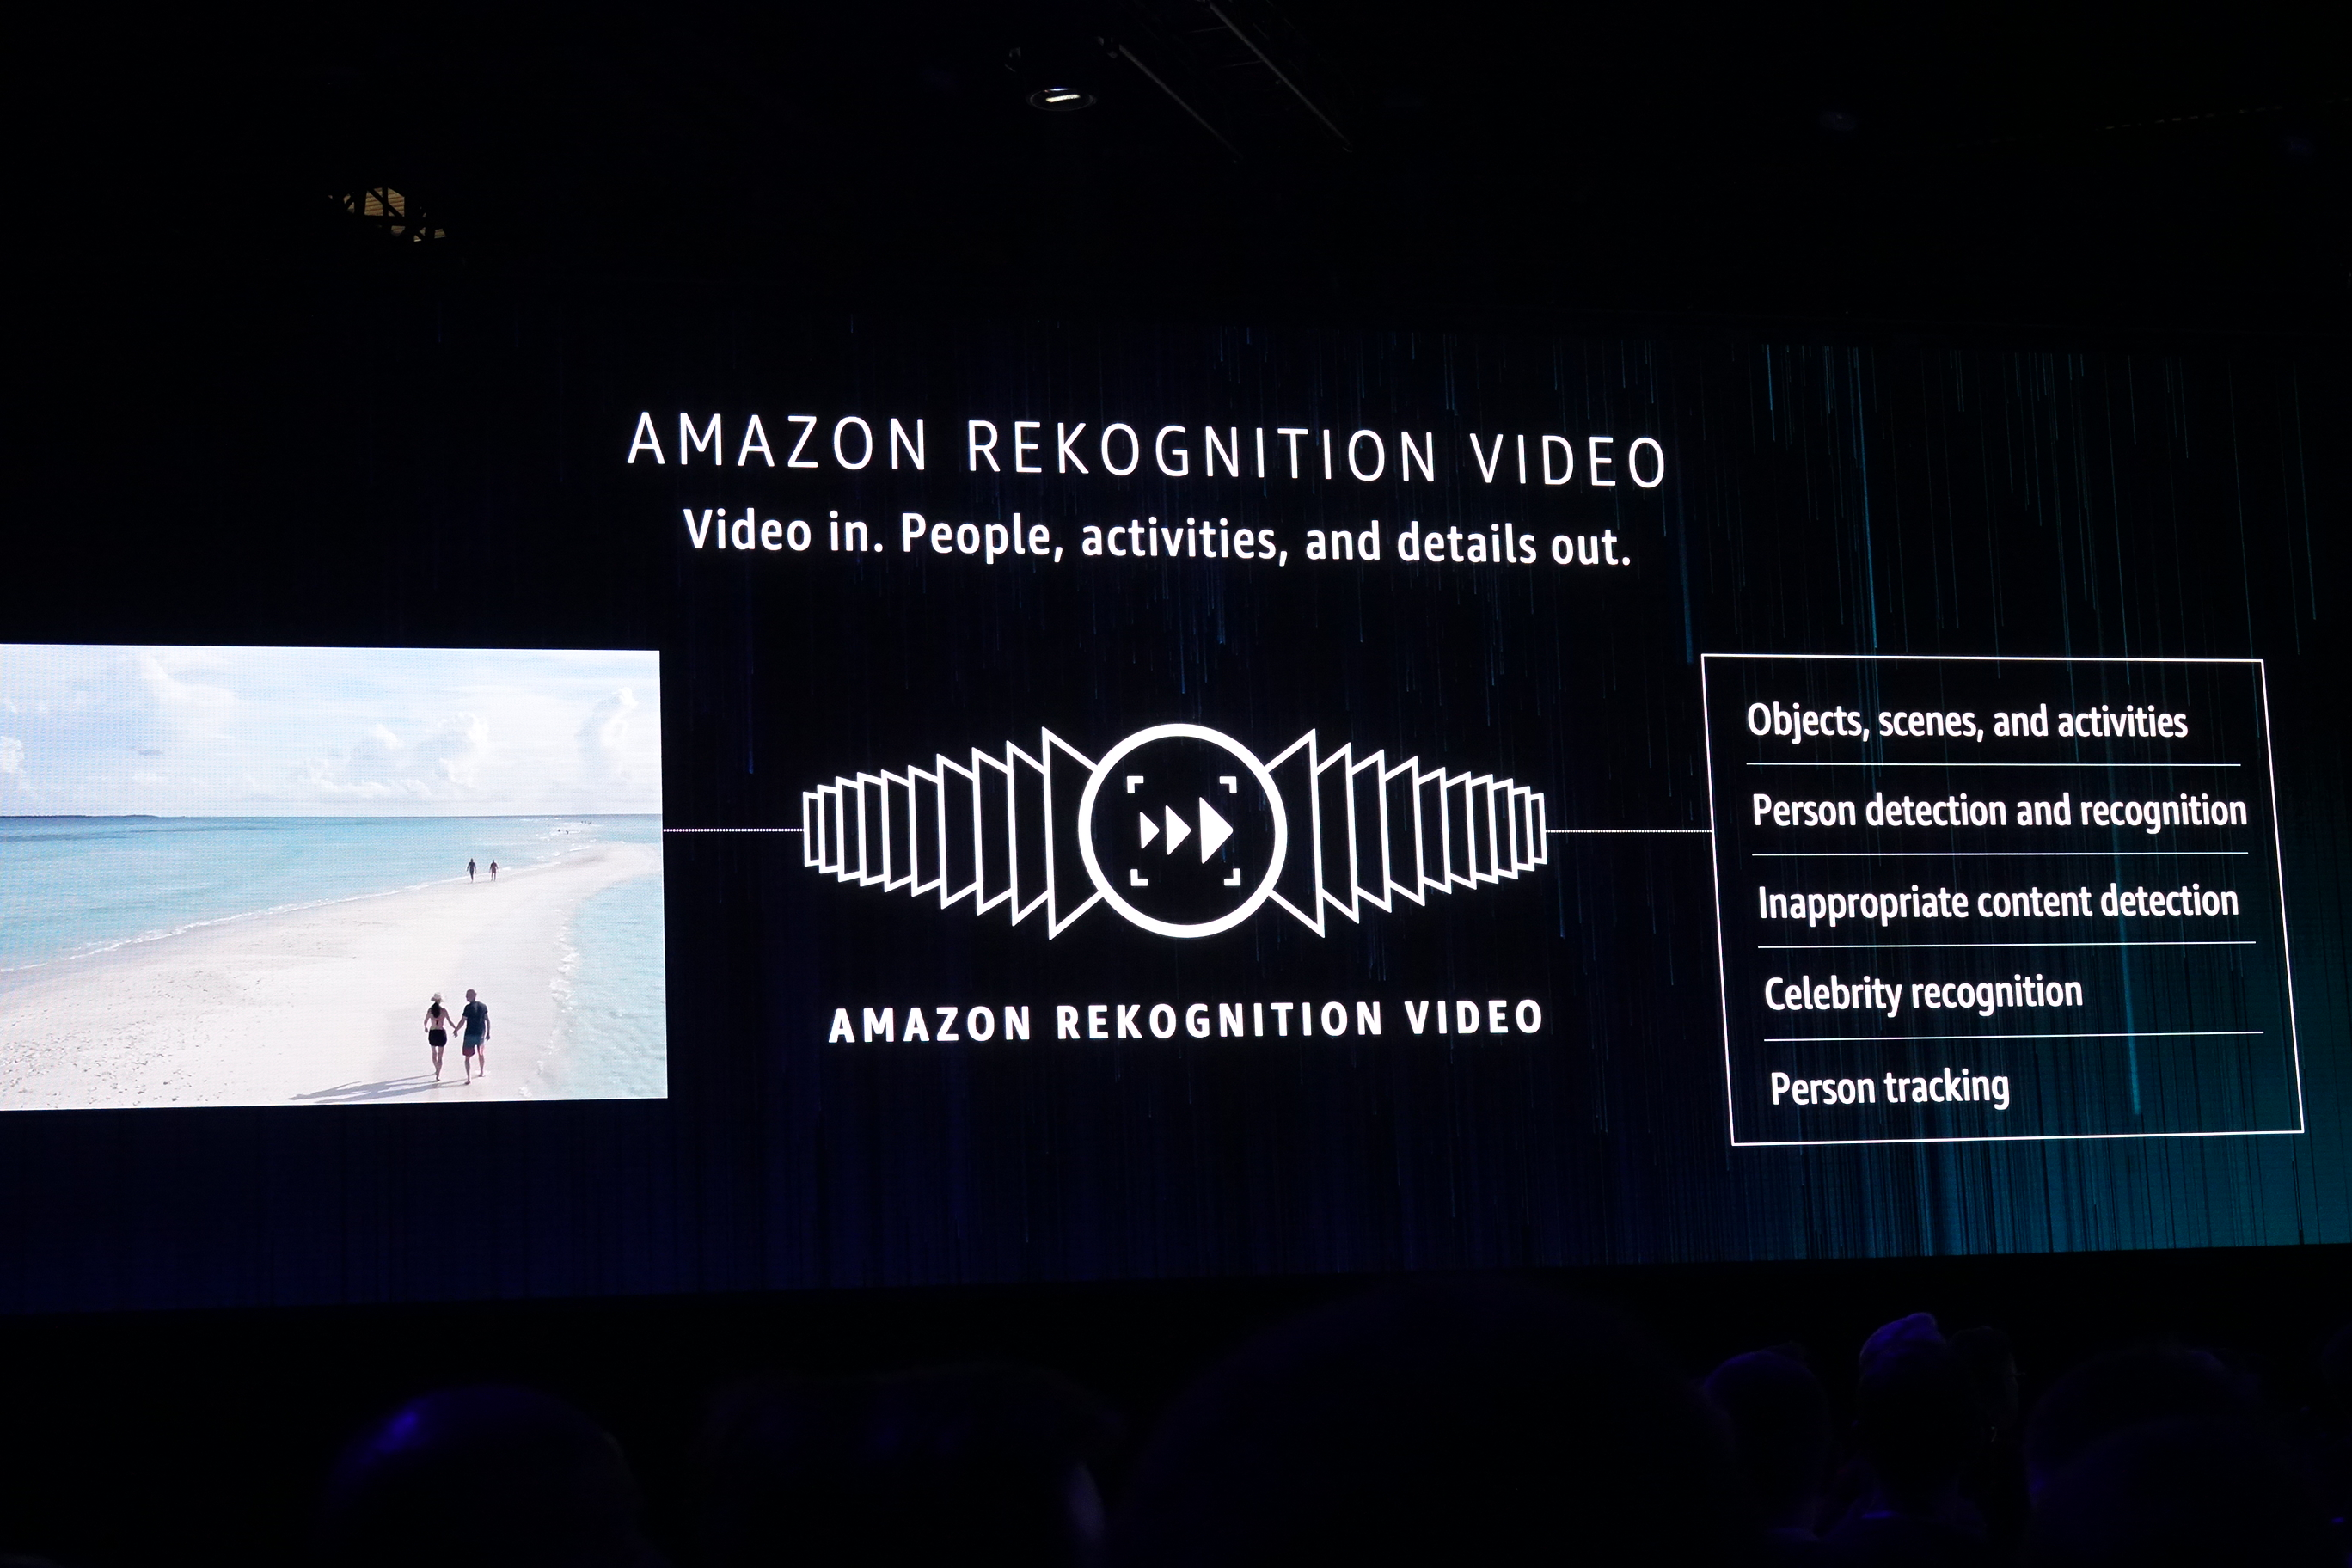 Amazon REKOGNITION VIDEO